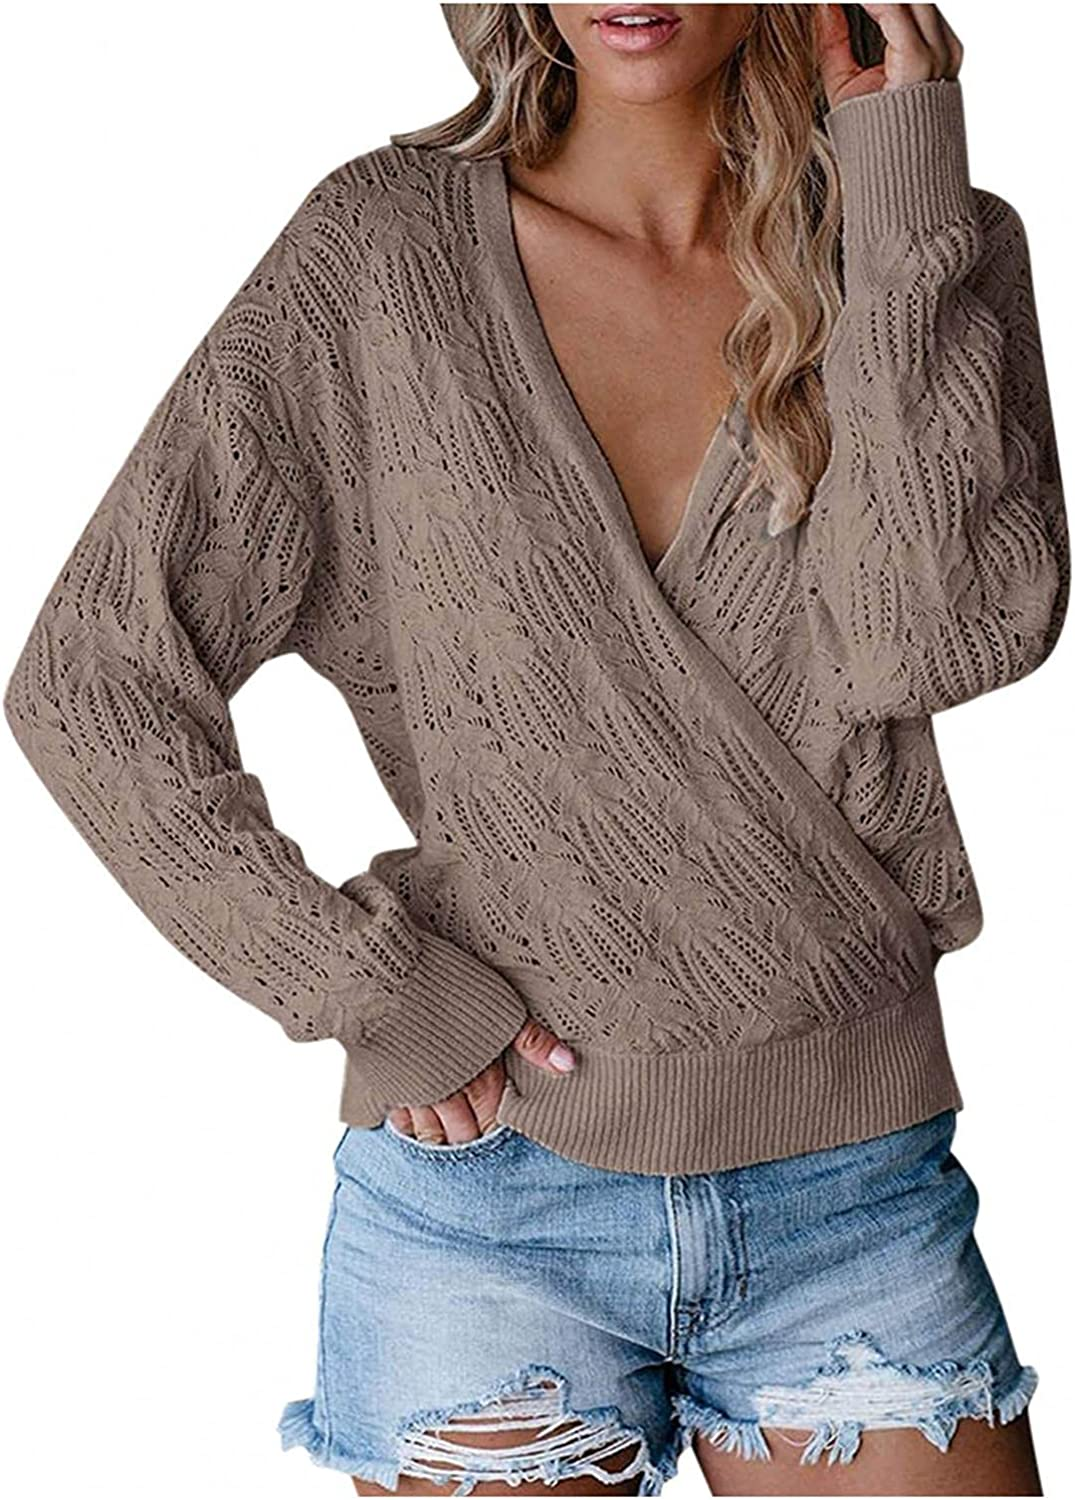 UUJUNE Women's Sweaters Long Sleeves Deep V Neck Casual Loose Fit Hollow Solid Pullovers Knit Crop Sweater Cozy Tunic Tops